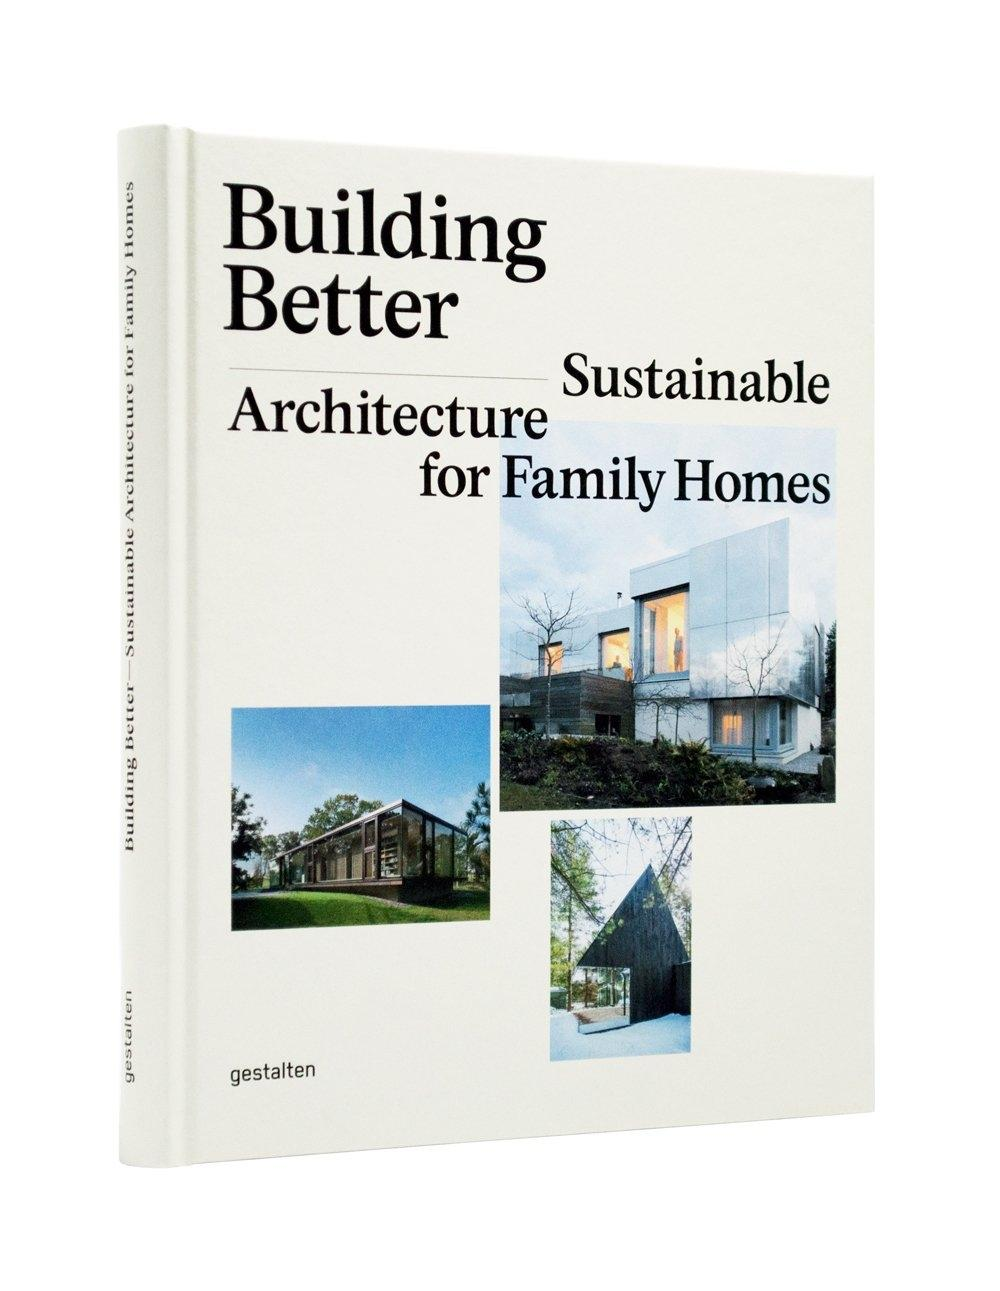 BUILDING BETTER. SUSTAINABLE ARCHITECTURE FOR FAMILY HOMES